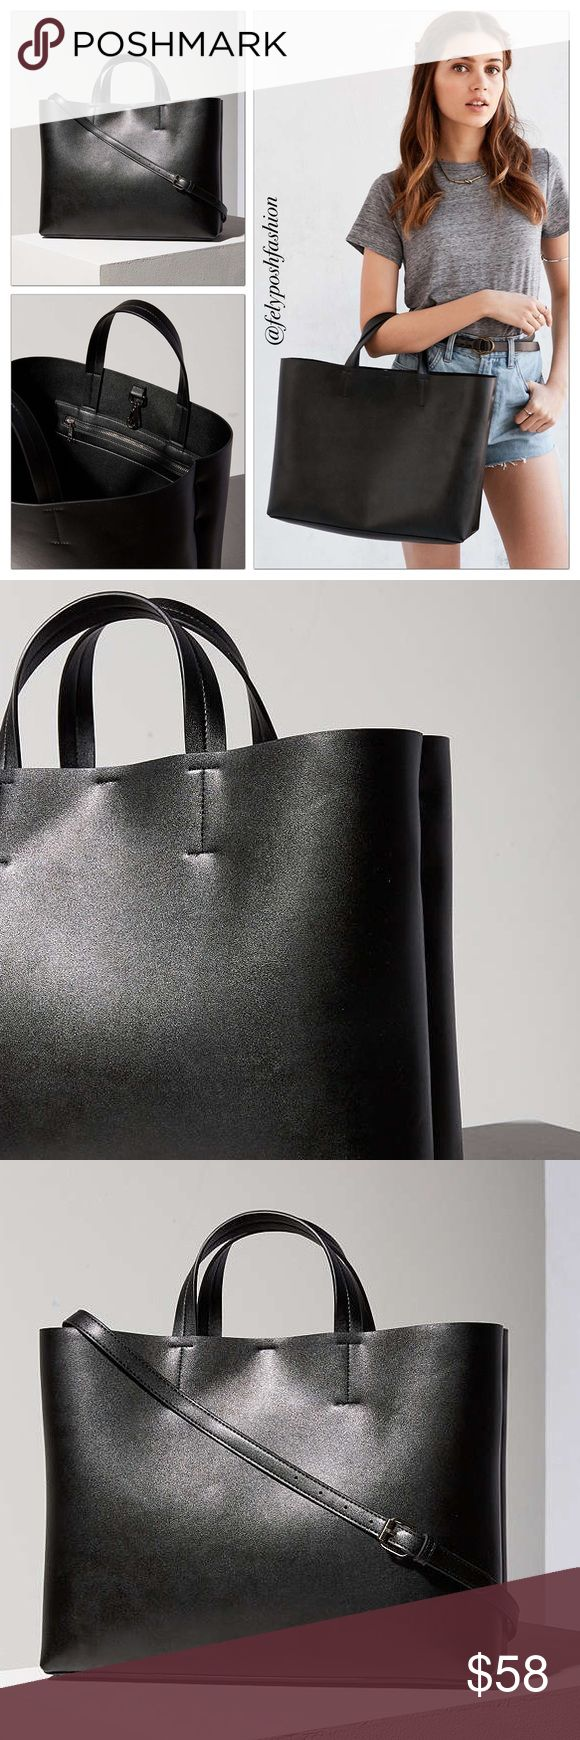 Urban Outfitters S&N Black Jule Oversized Tote Bag Urban Outfitters Silence + Noise Women's Black Jule Oversized Tote Bag One Size. Keep your style sharp with this sleek vegan leather tote bag from progressively innovative brand. Urban Outfitters Bags Totes